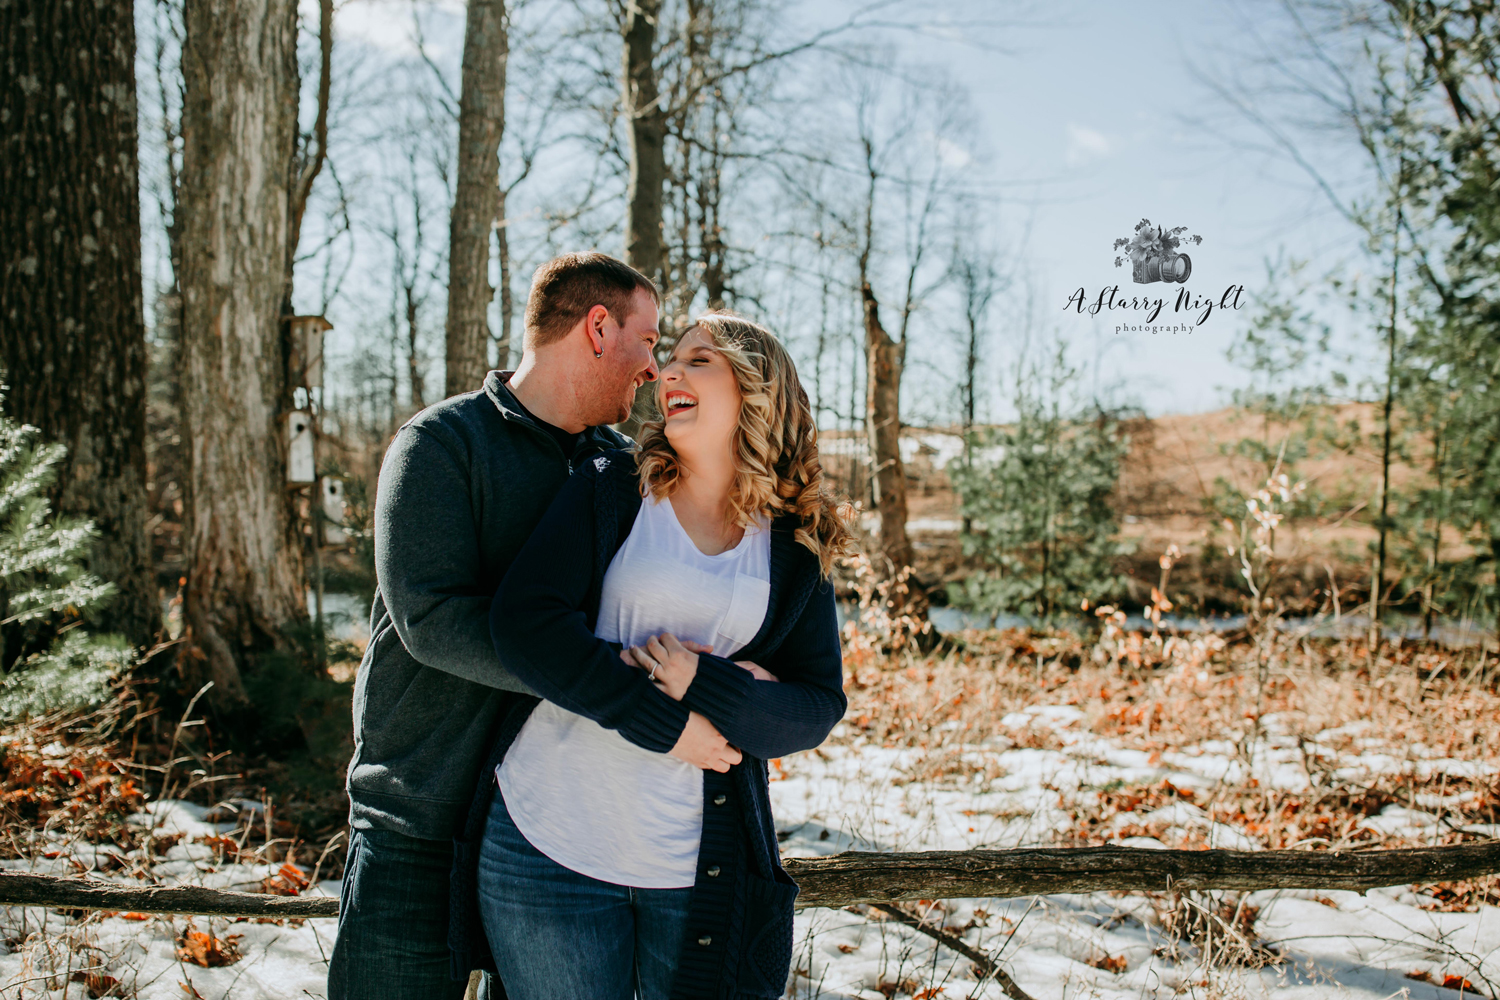 couple-laughing-engagement-photos-midland-dow-couple-laughing.jpg